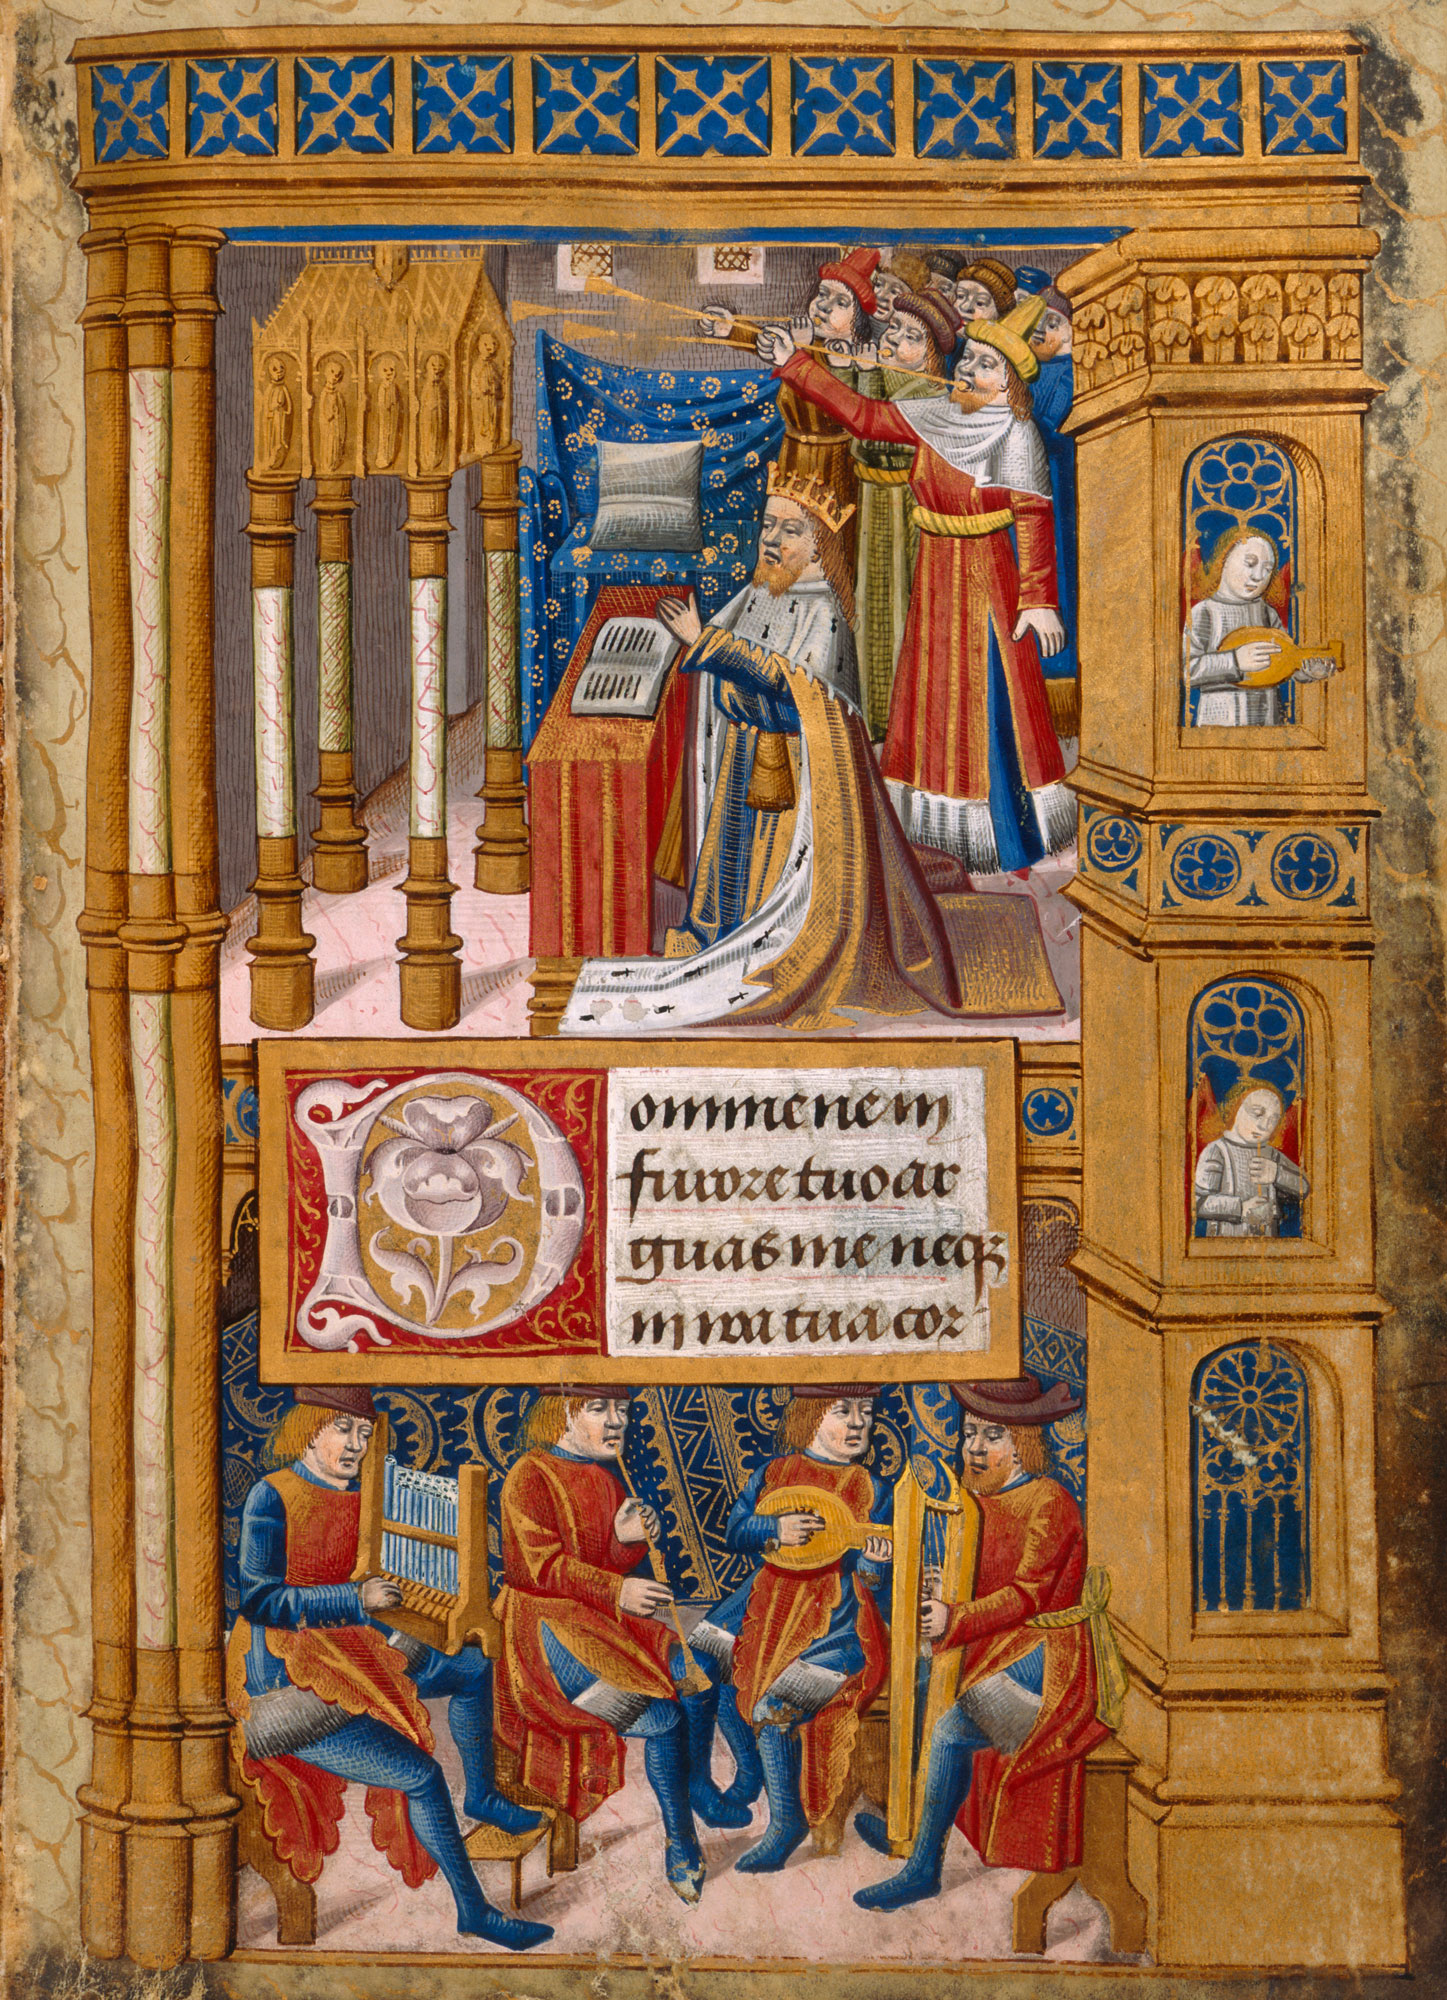 Miniature of King David in prayer, with music making angels and men